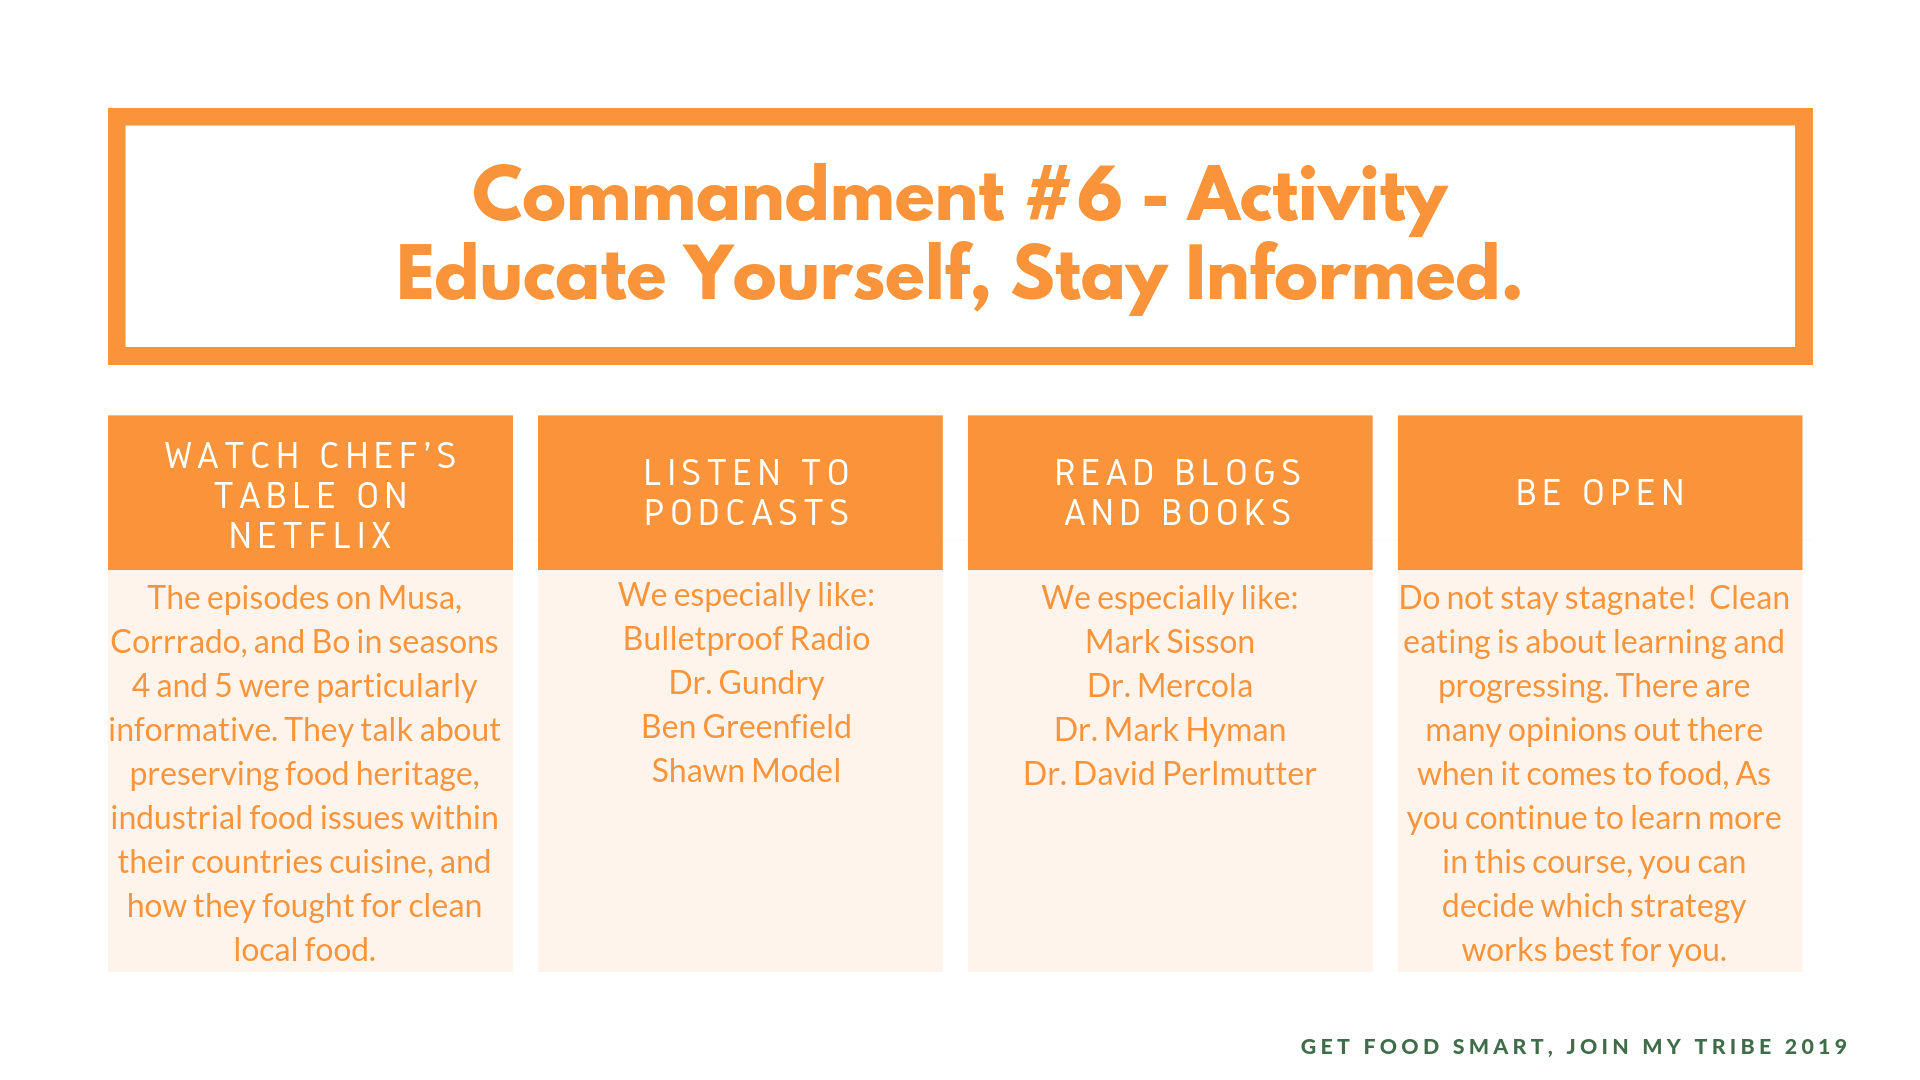 commandment #6 Educate yourself, stay informed